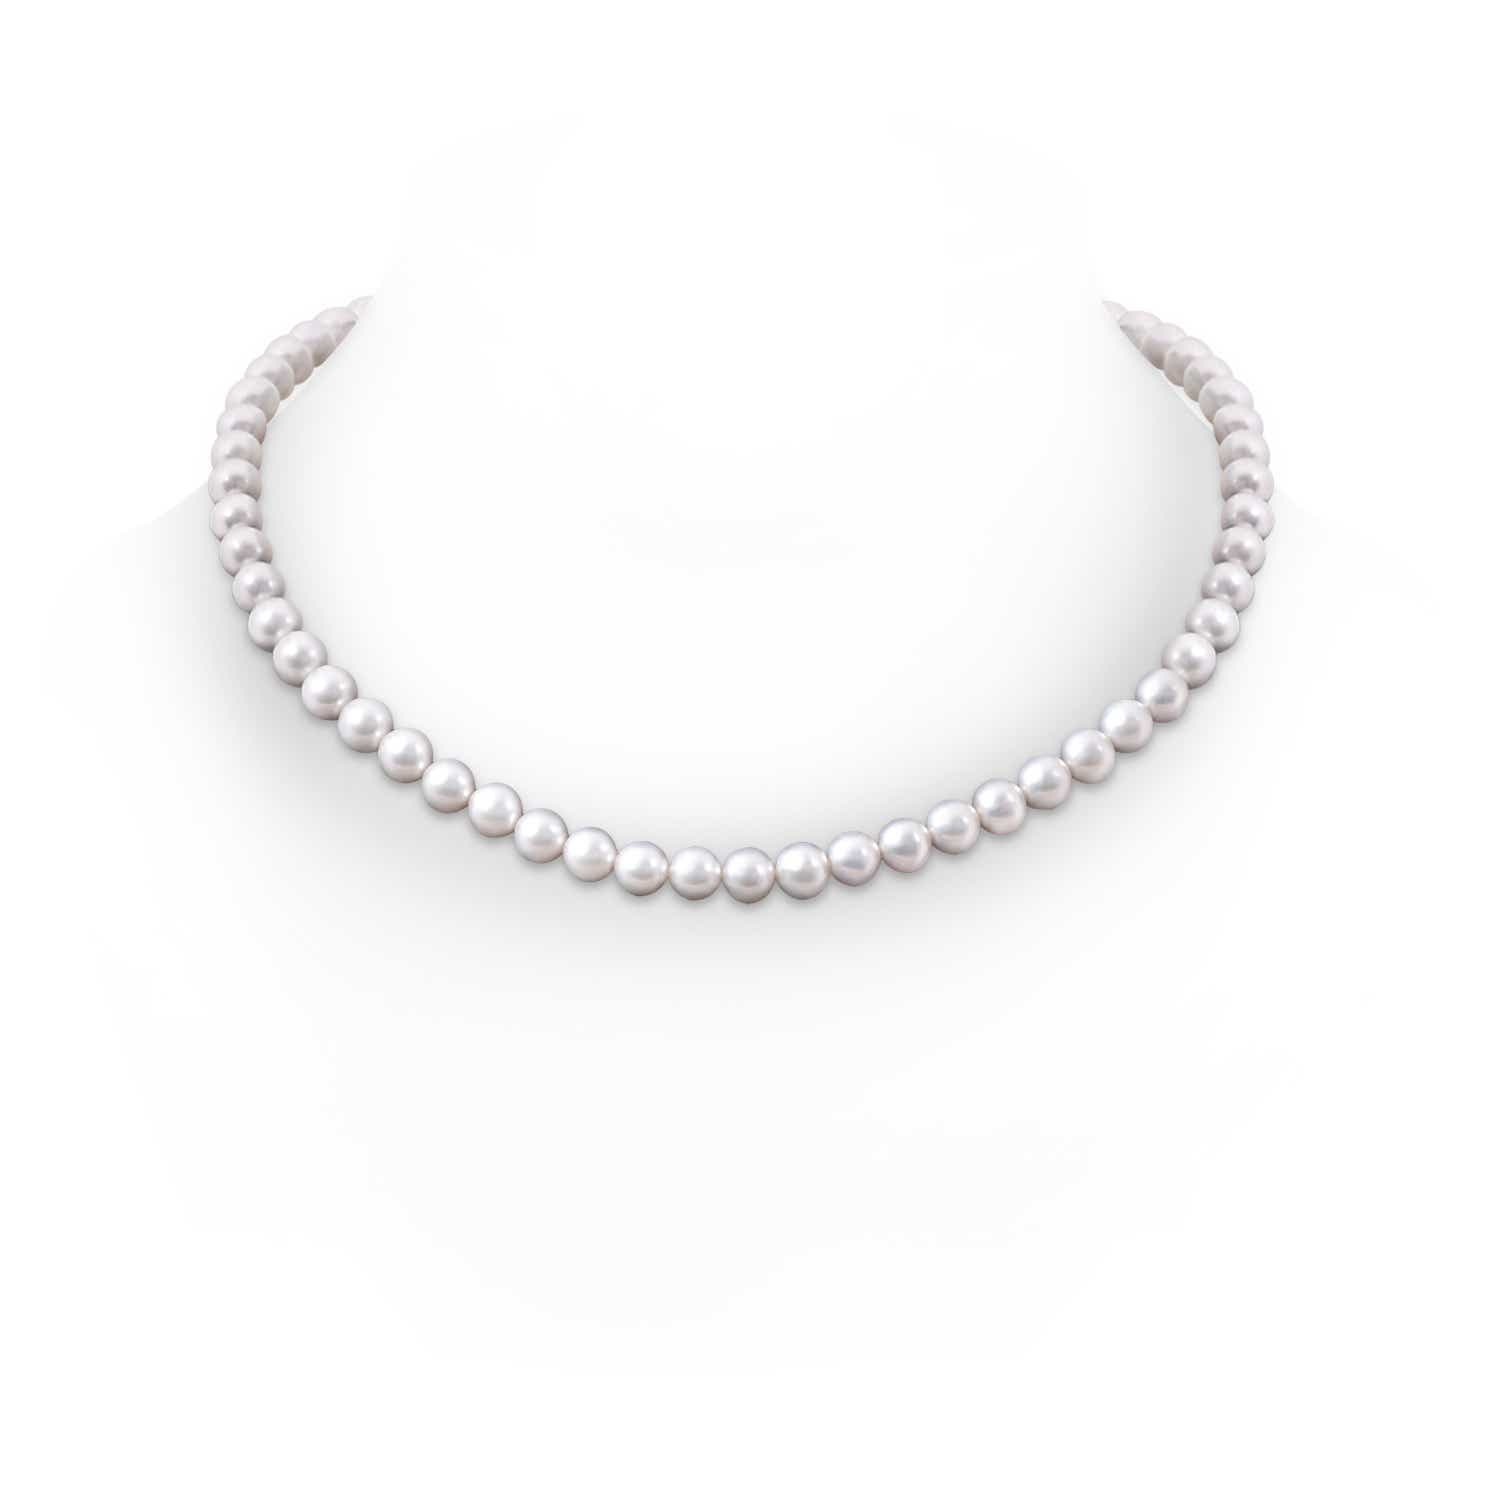 7-8mm, 20 Classic Freshwater Cultured Pearl Necklace